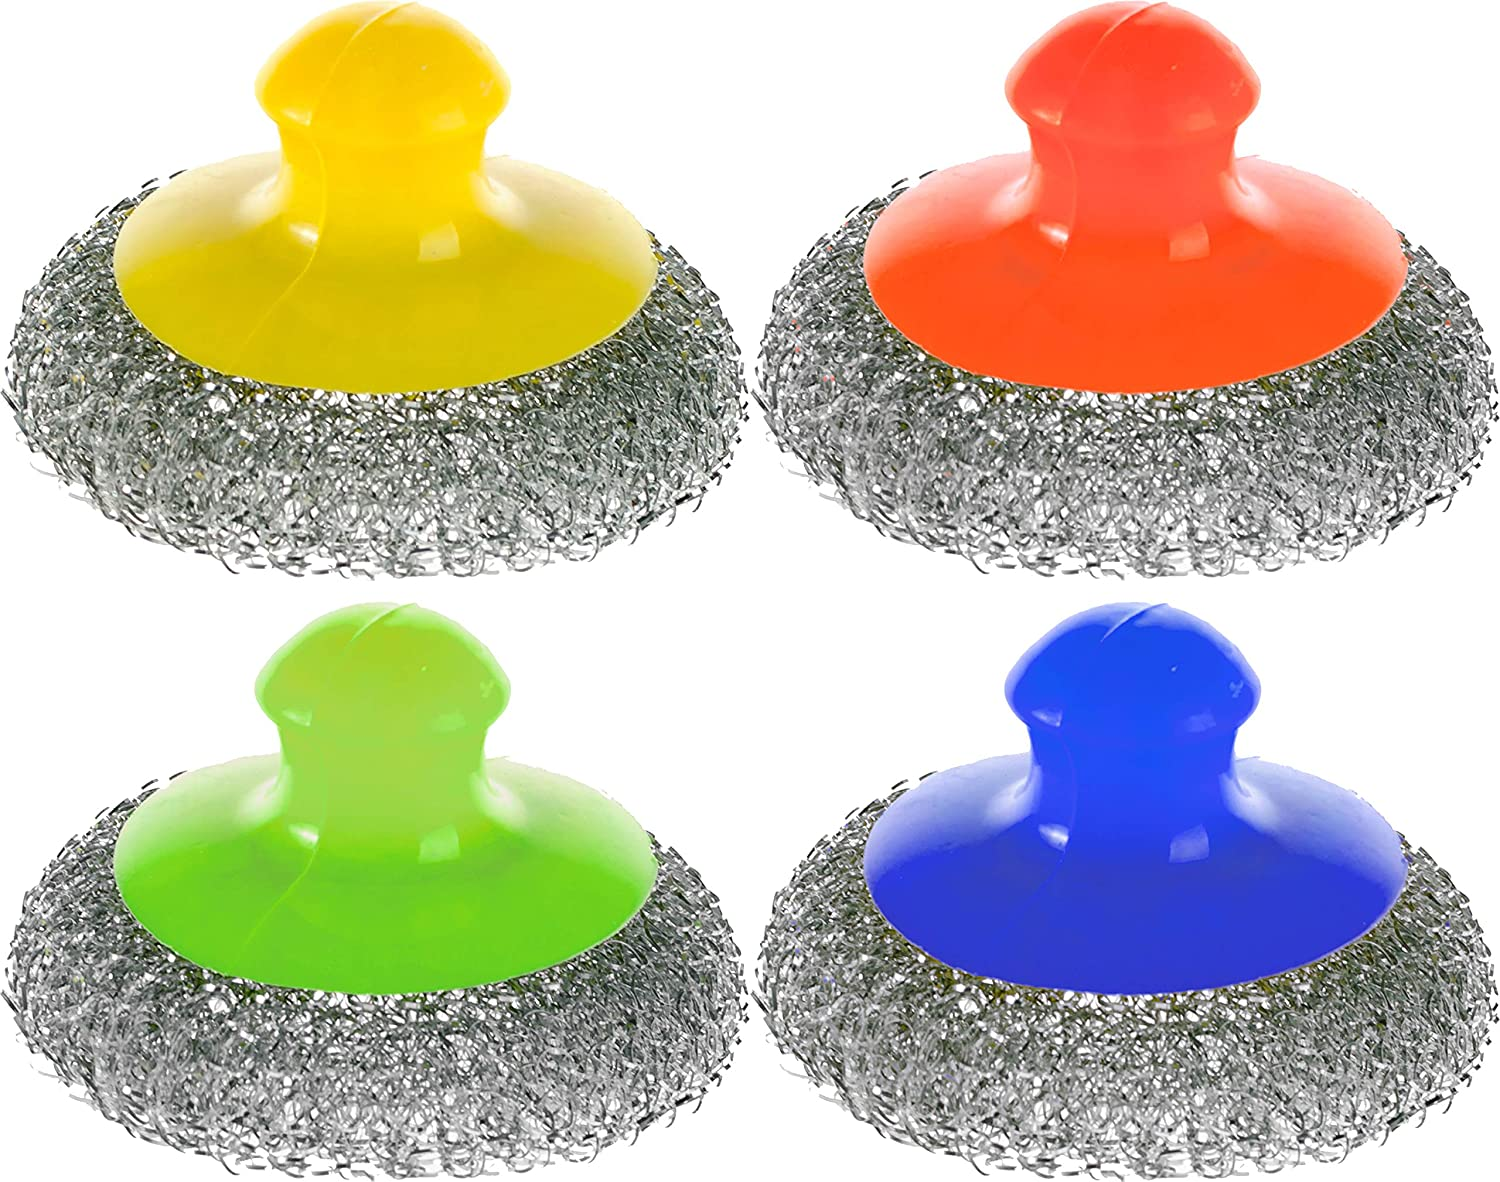 Wire Stainless Steel Sponge - Set of 4 - Handle Wool Scouring Scrubber - Metal Scrub Pads